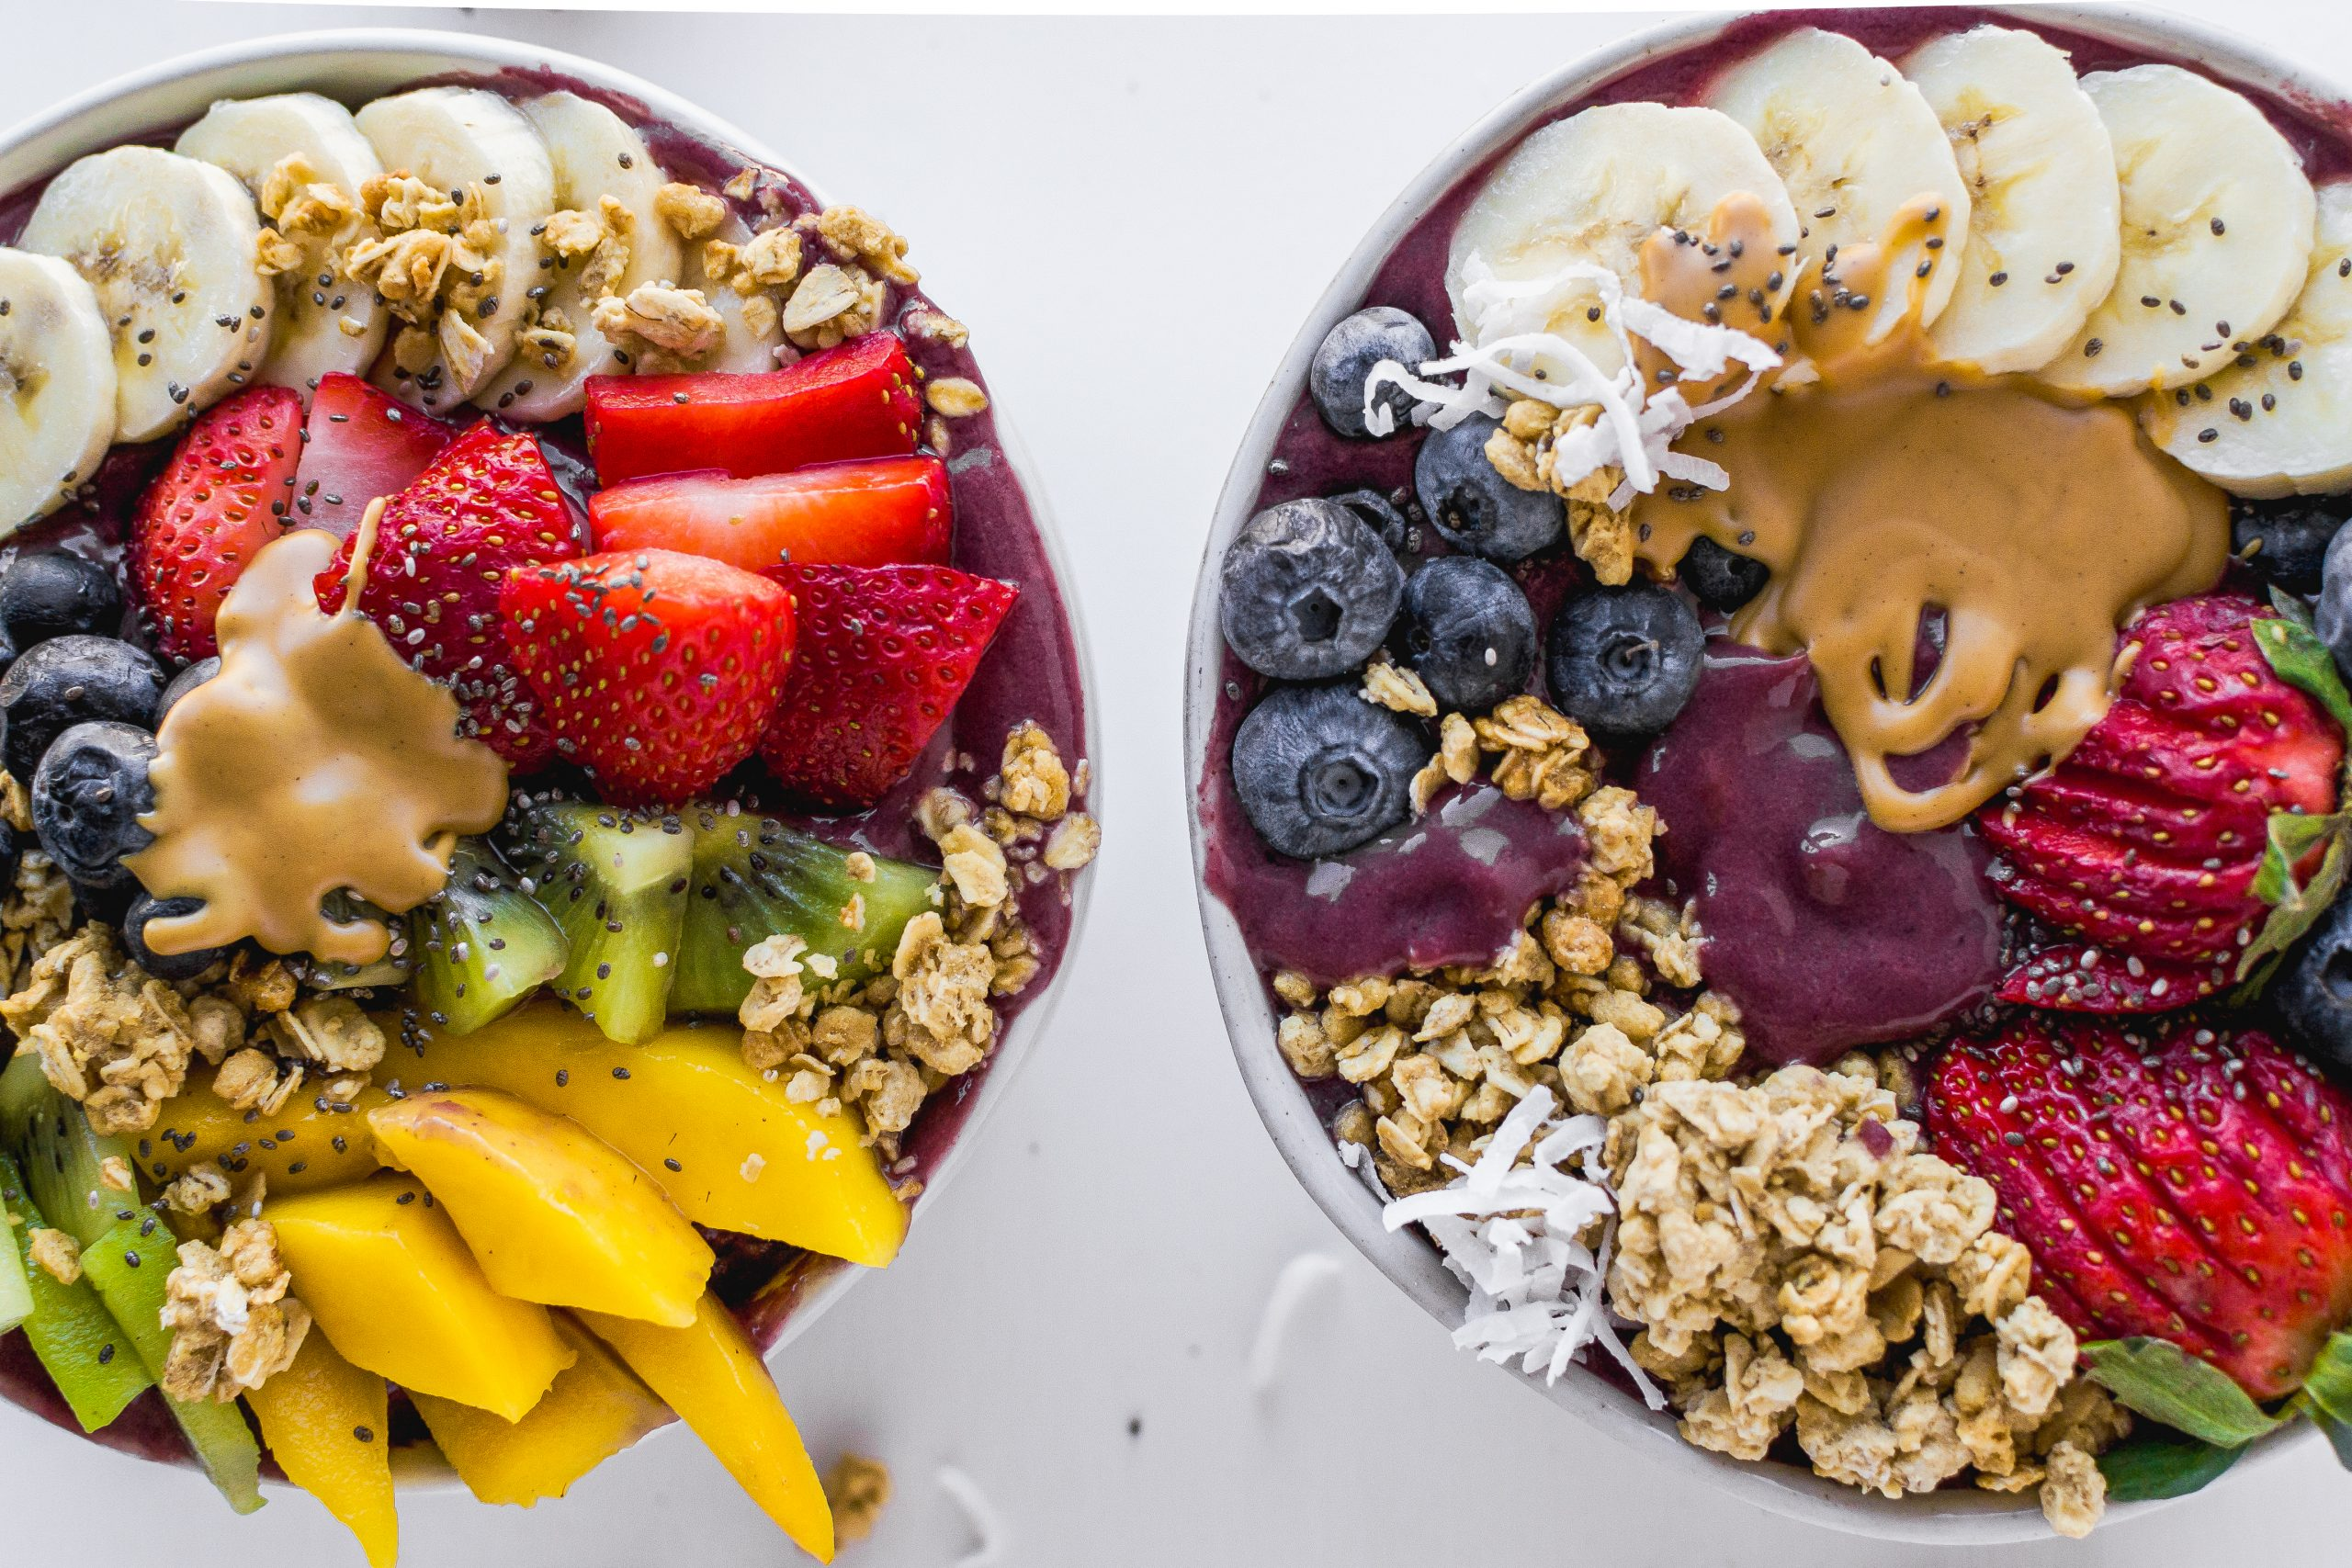 two different variations of acai bowls and toppings